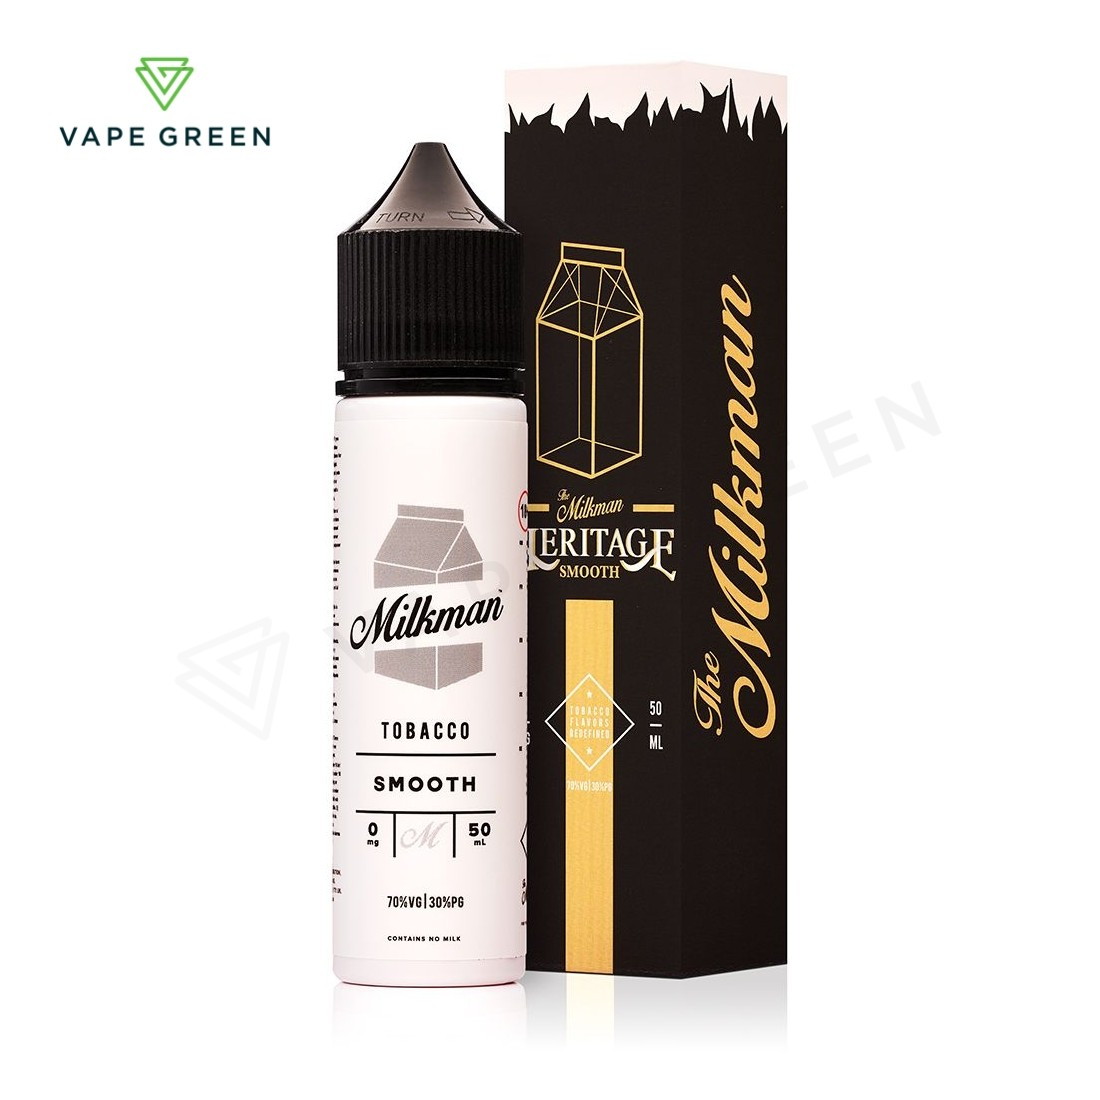 Smooth E-Liquid by The Milkman Heritage 50ml